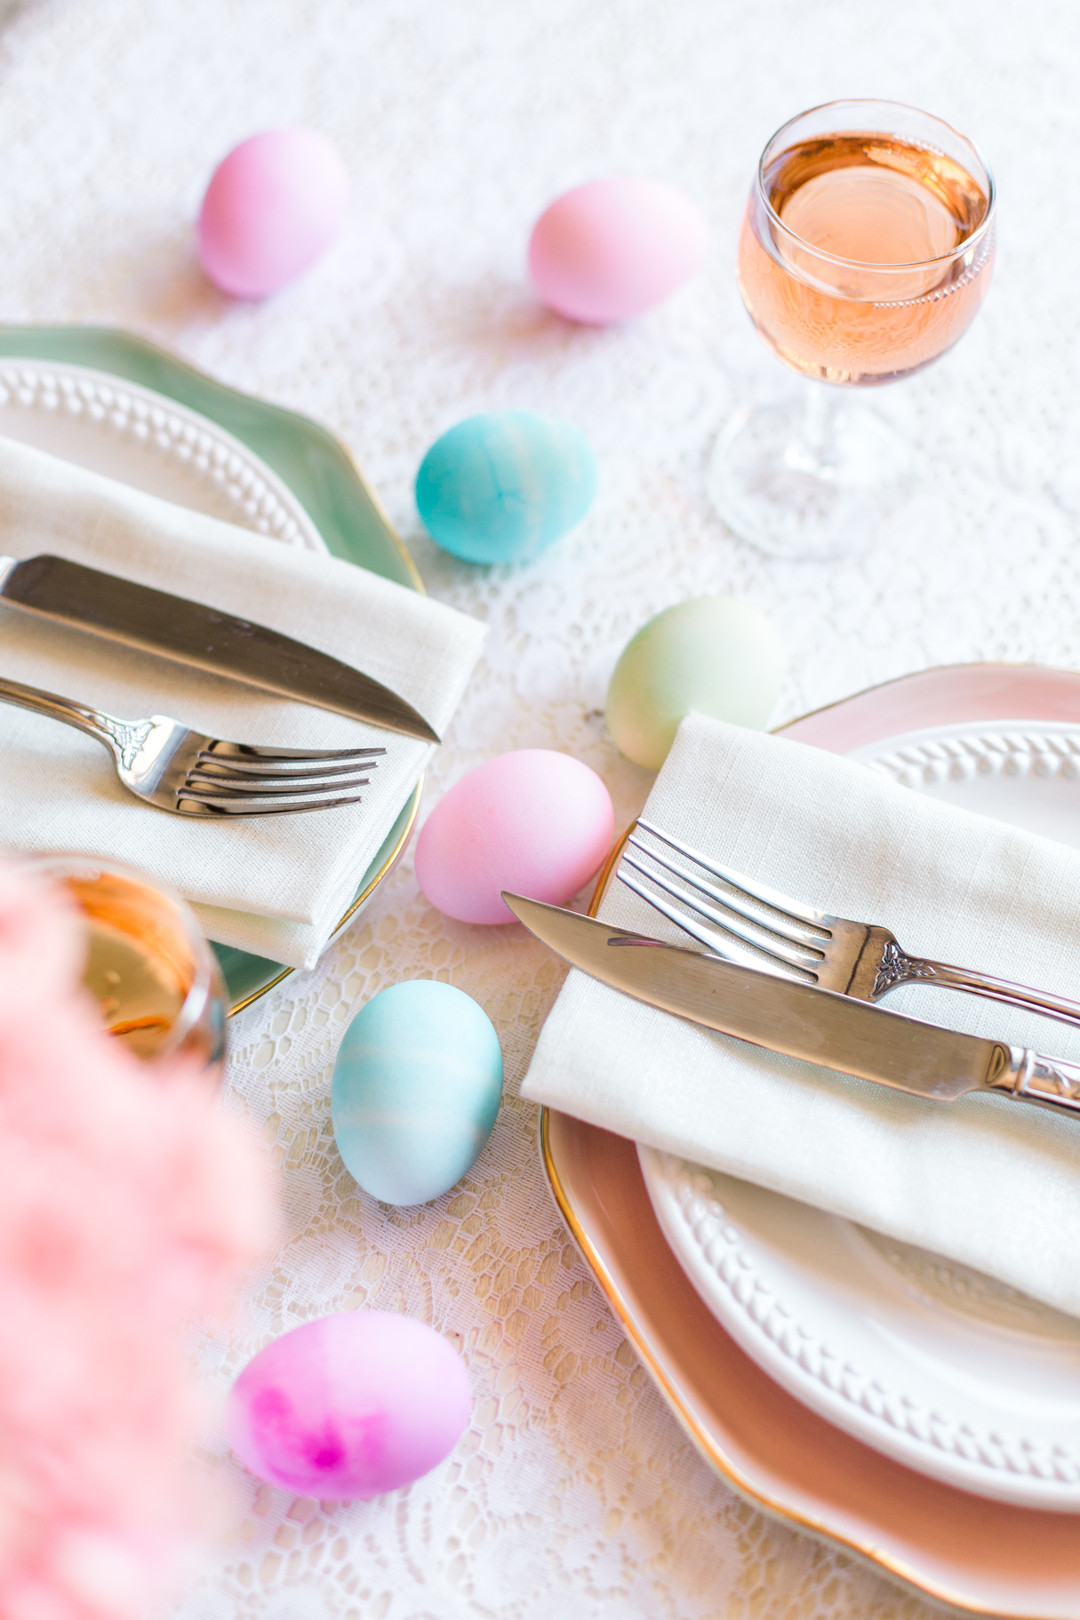 Staal_KristinaStaalPhotography_KristinaStaalPhotographyEasterTablescape201628_big Easy Entertaining: Easter Brunch Inspiration for Two